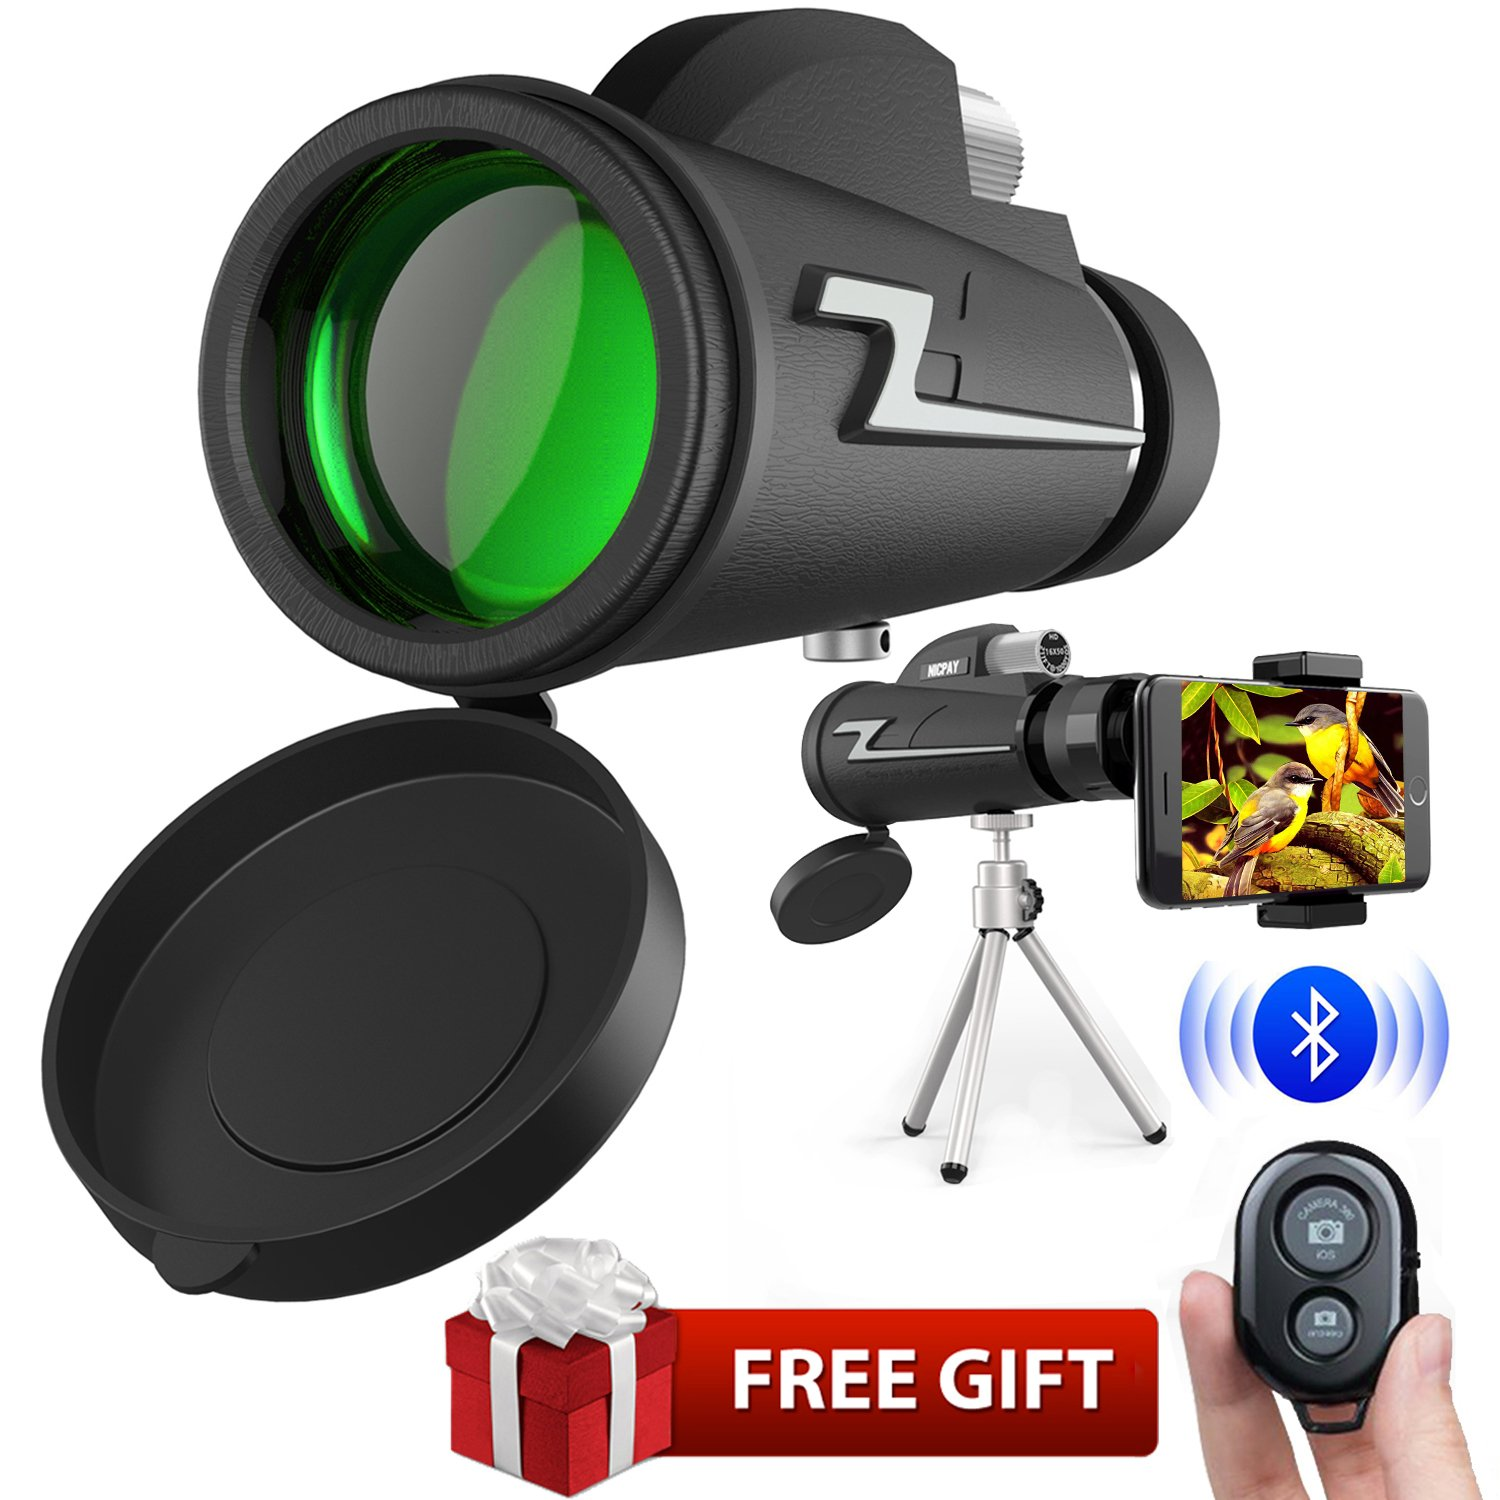 Monocular Telescope,16x50 High Powered Prism Scope Waterproof Monocular with Quick phone Mount Adapter and Tripod,Fogproof Optics FMC BAK4 Prisms, Low Night Vision Focus for Outdoor Like Bird Watching